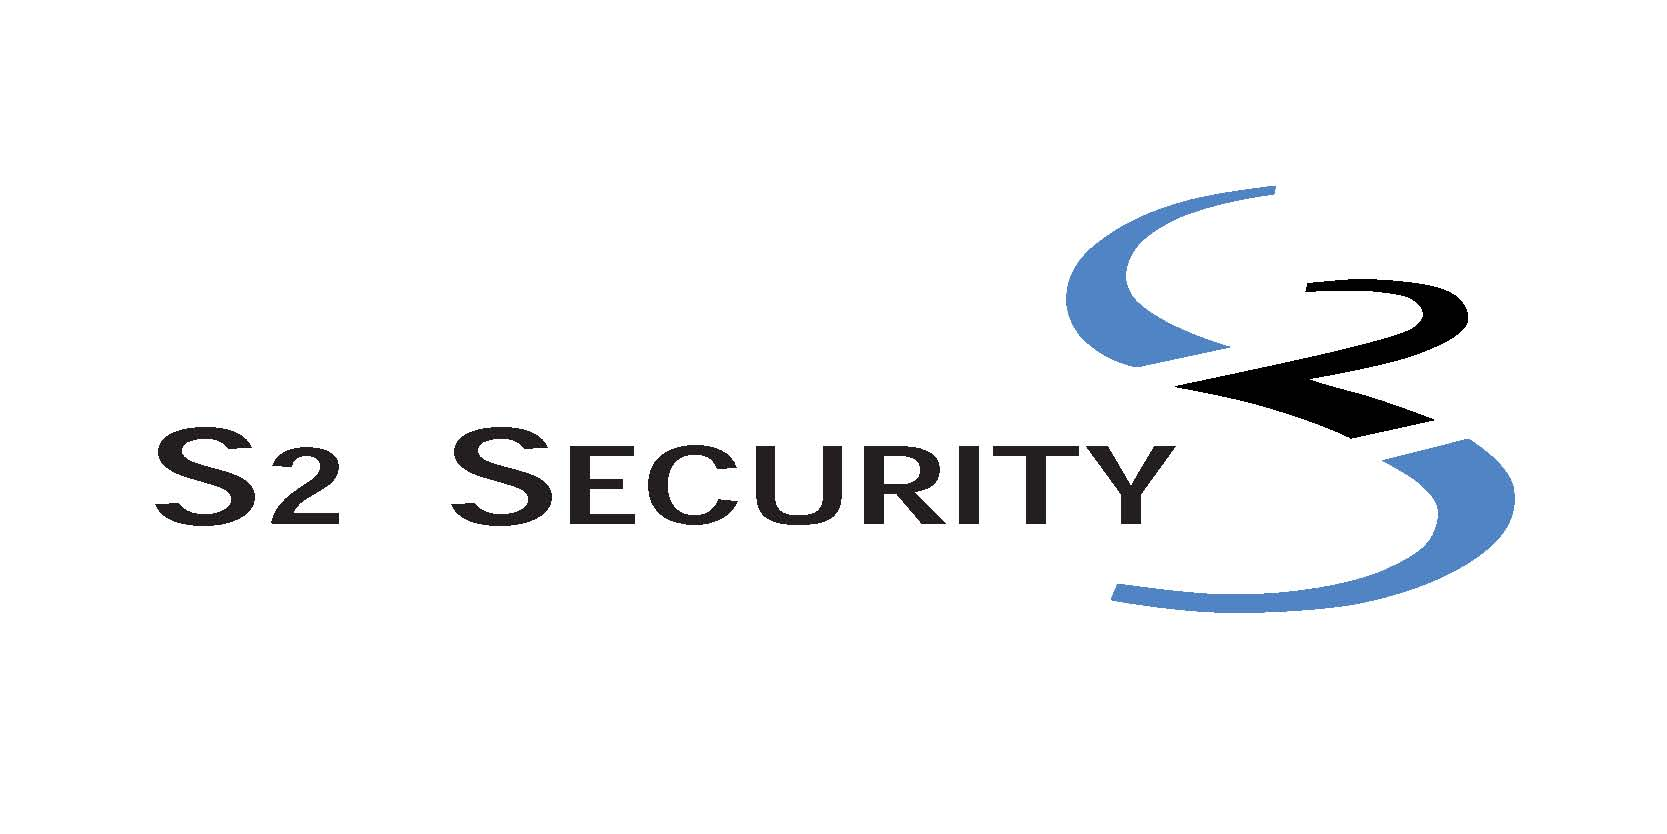 an overview of network security for companies Sophisticated cyber actors and nation-states exploit vulnerabilities to steal  information and money and are  cybersecurity overview  vulnerable to  cyberattacks such as corporate security breaches, spear phishing, and social  media fraud.